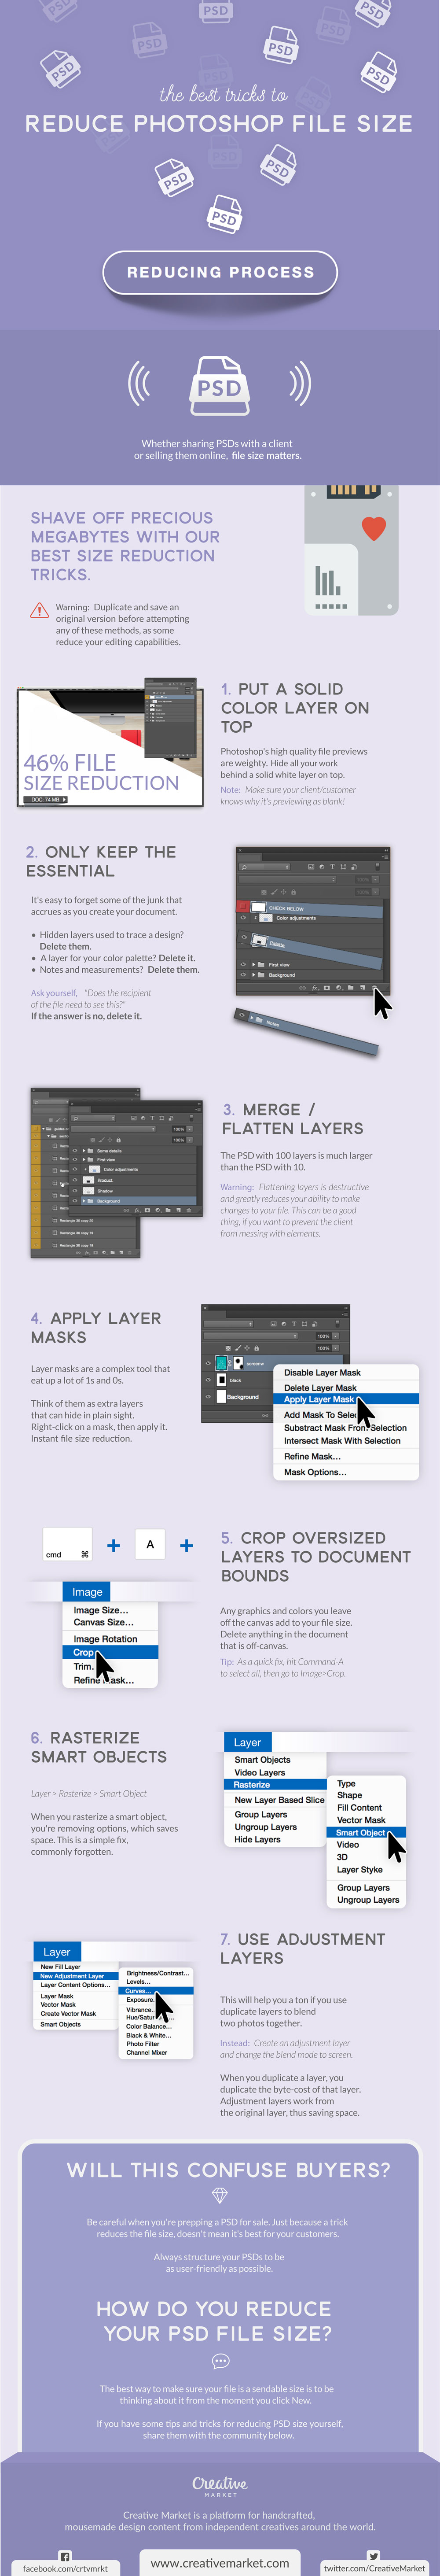 Infographic: The Best Tricks to Reduce Photoshop File Size ...